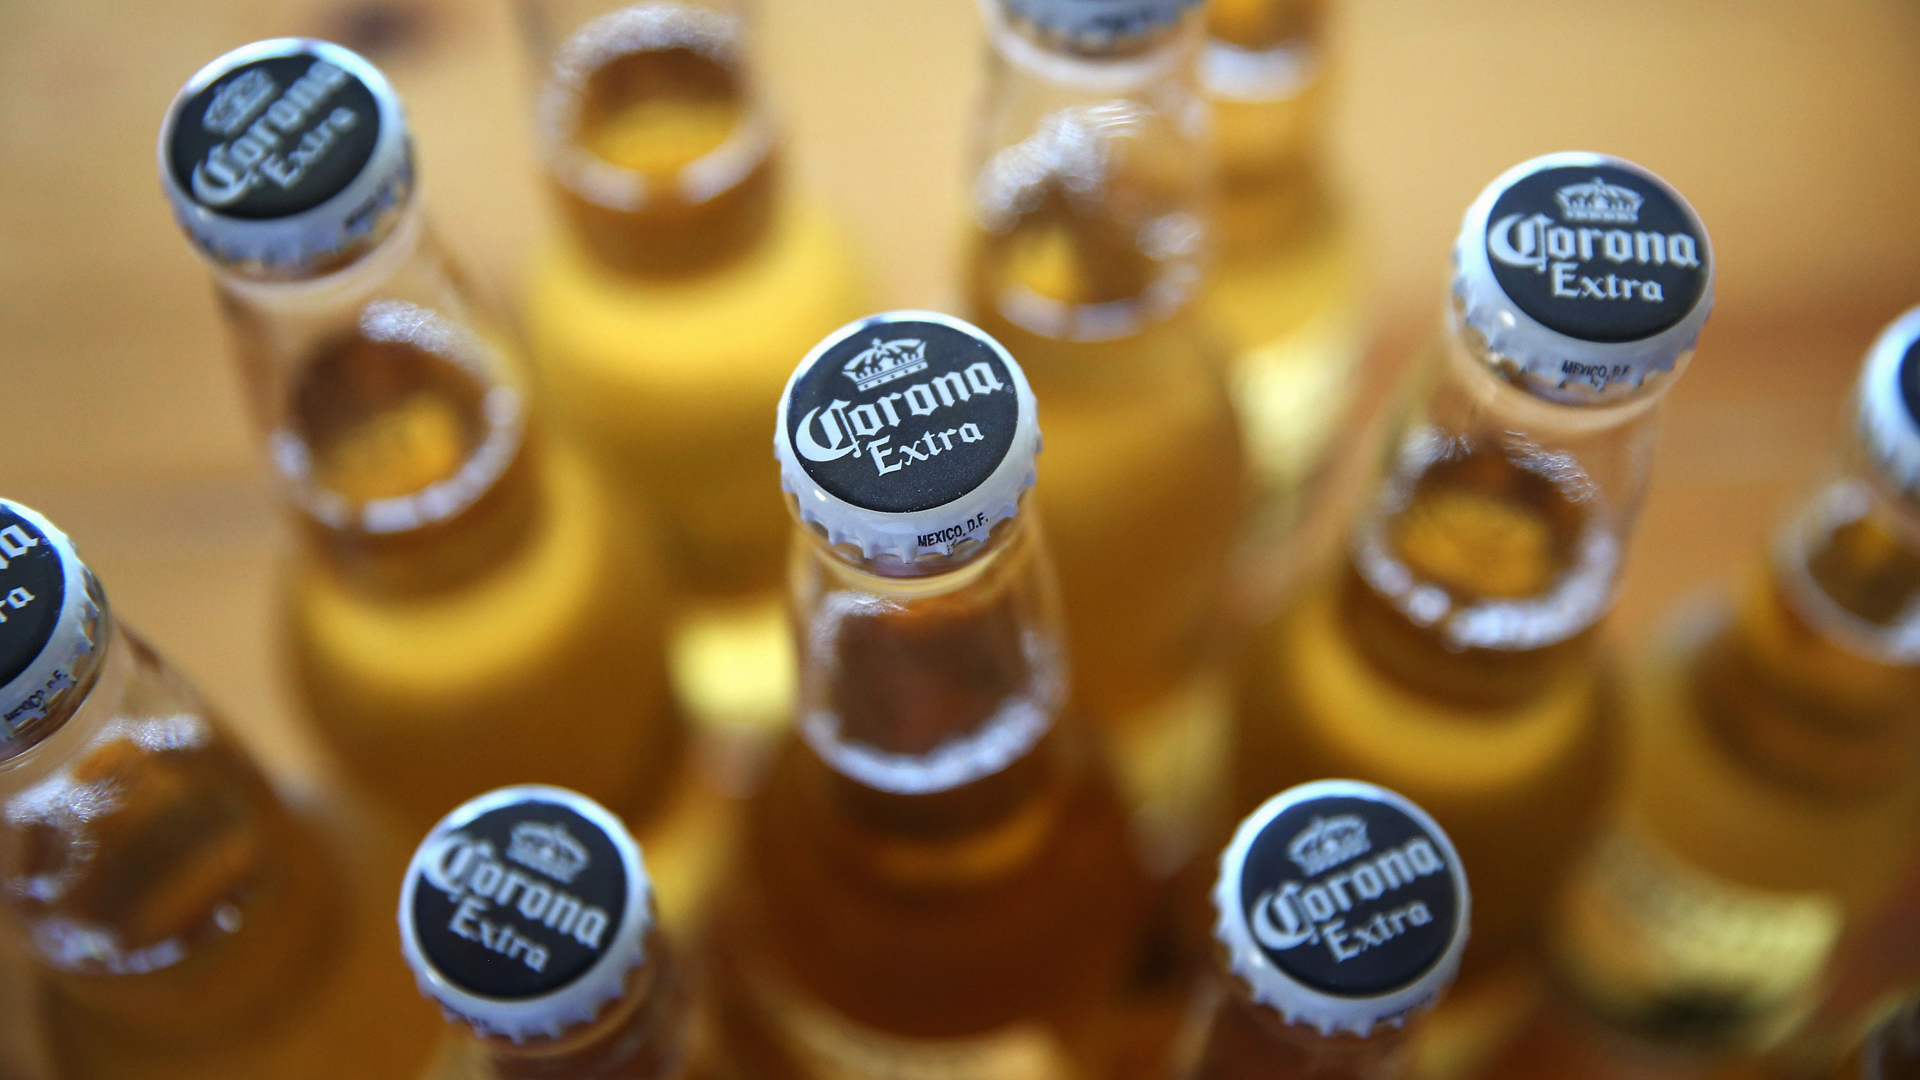 In this photo illustration, bottles of Corona beer are shown on June 7, 2013, in Chicago. (Scott Olson/Getty Images)